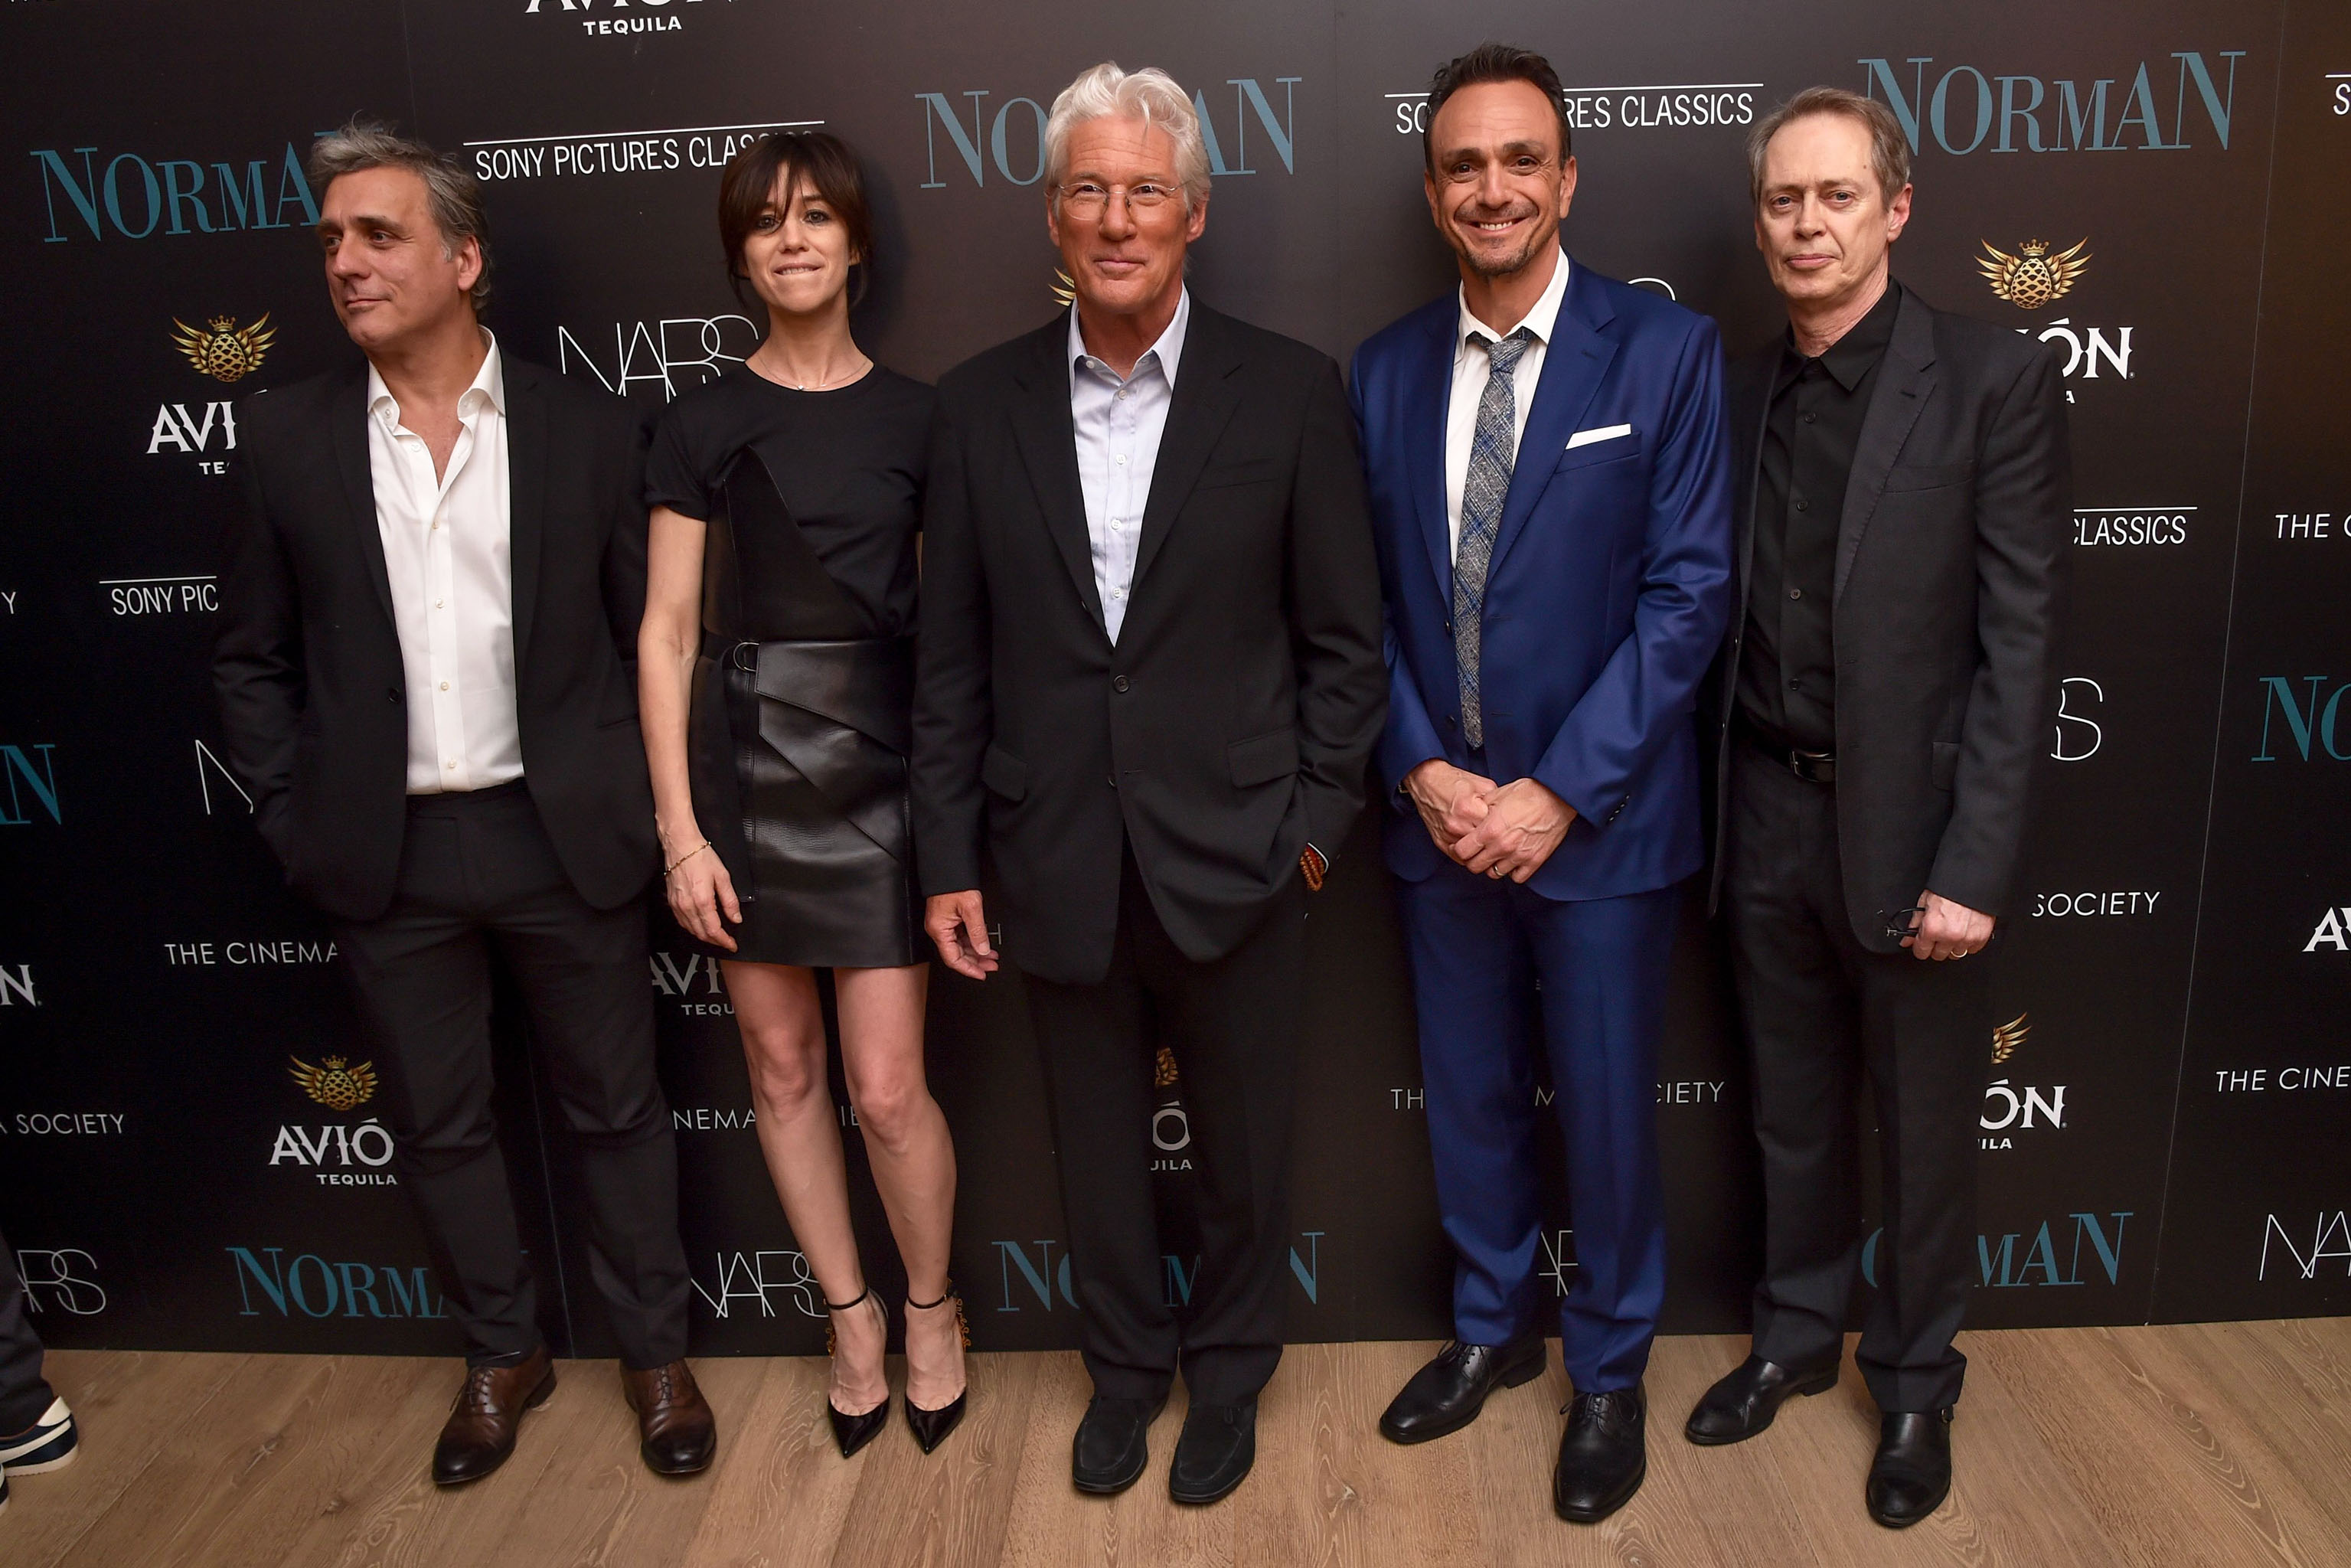 Lior Ashkenazi, Charlotte Gainsbourg, Richard Gere, Hank Azaria and Steve BuscemiThe Cinema Society with NARS and Avion host a screening of Sony Picture Classics' 'Norman', Arrivals, New York, USA - Apr 12 2017